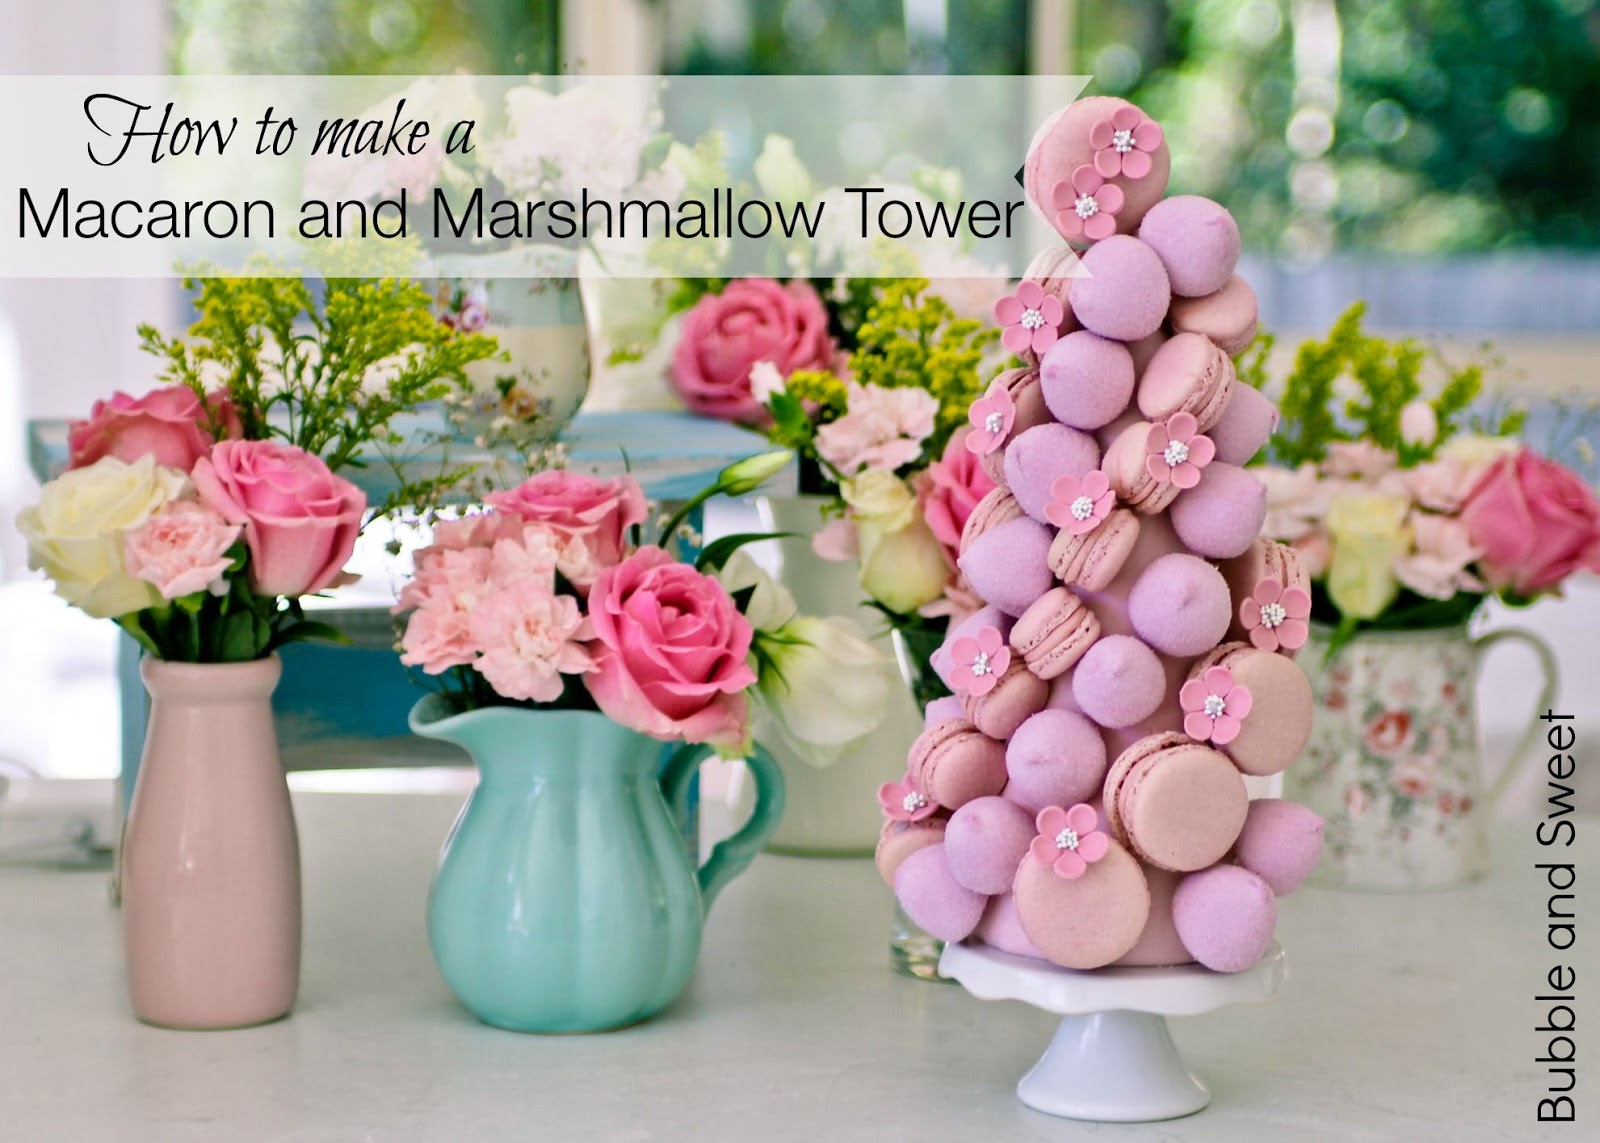 ... Sweet: Sweet Dreams are made of Pink - Macaron and Marshmallow Tower